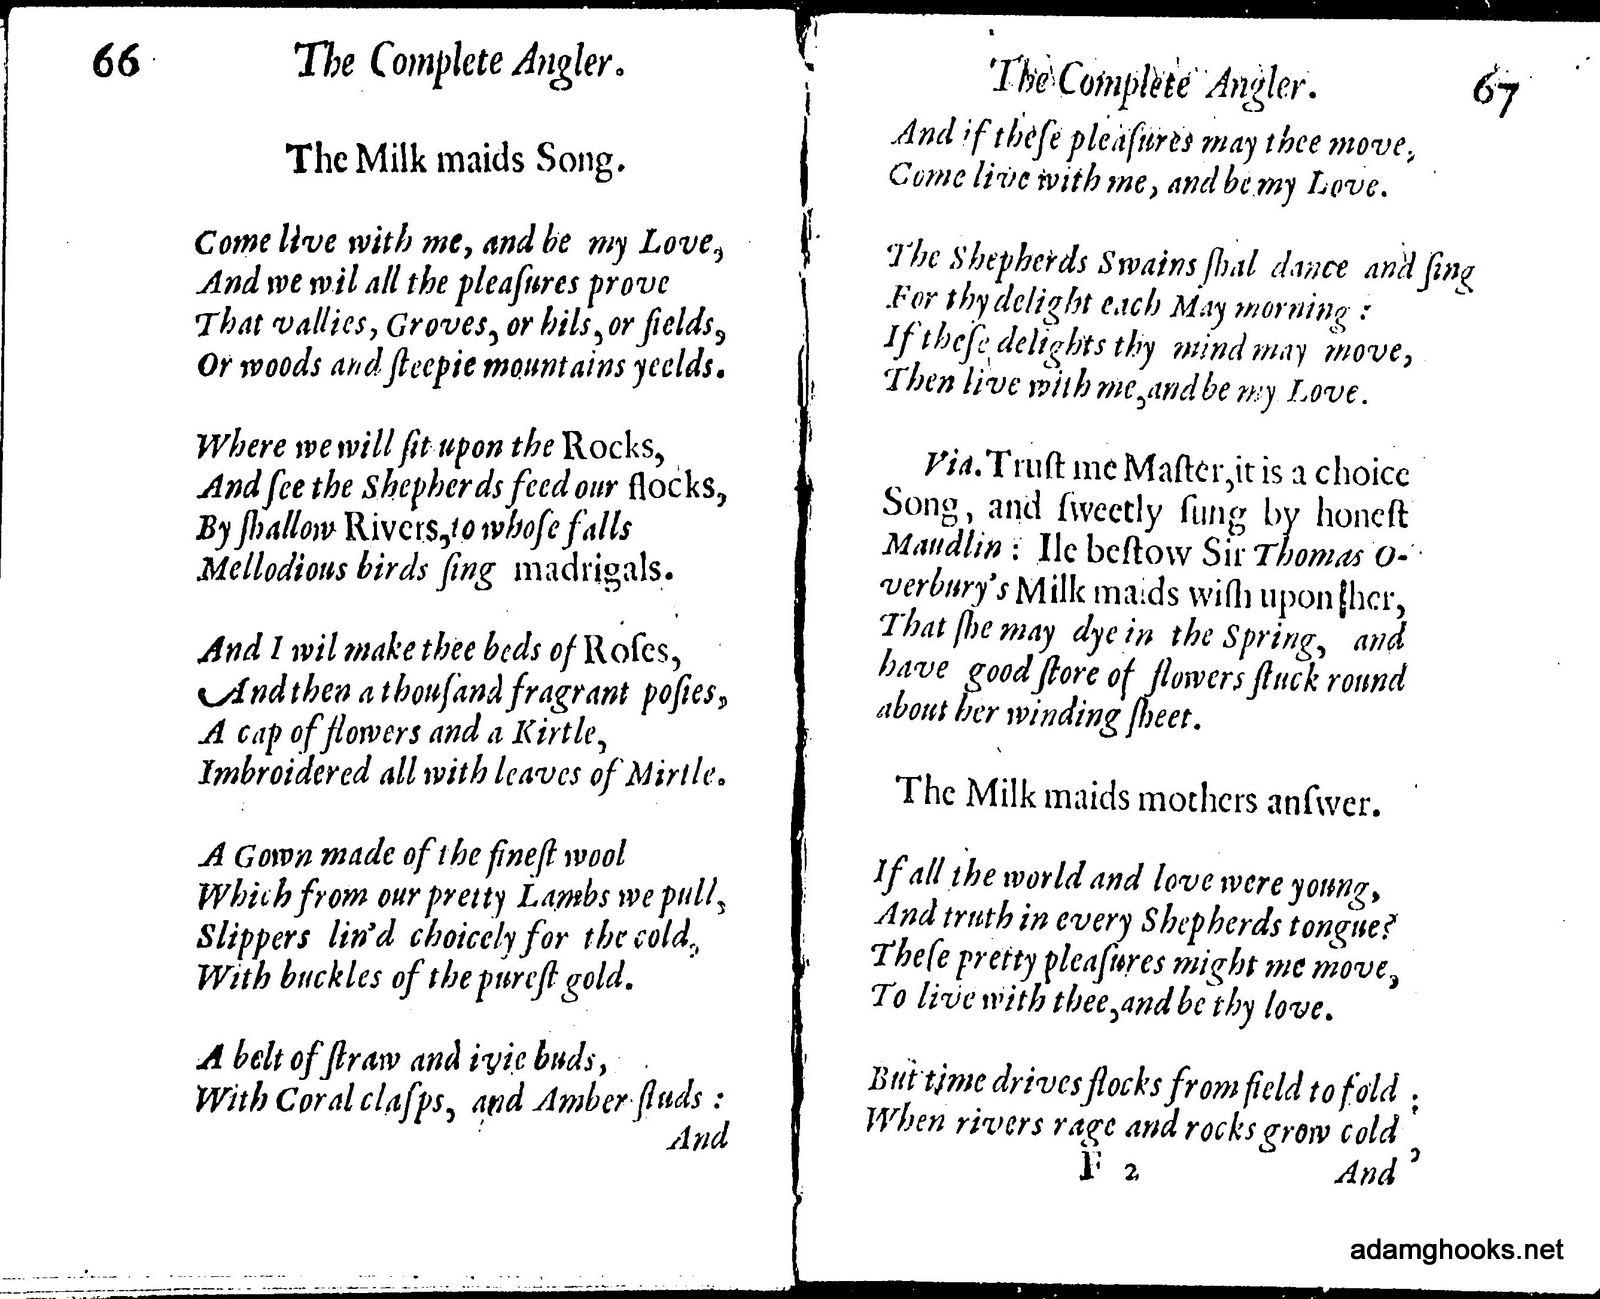 1488 meaning - Walton Characterizes The Two Songs As Old Fashioned Poetry A Phrase That Was Used To Describe The Poem A Number Of Times Almost Immediately After Its